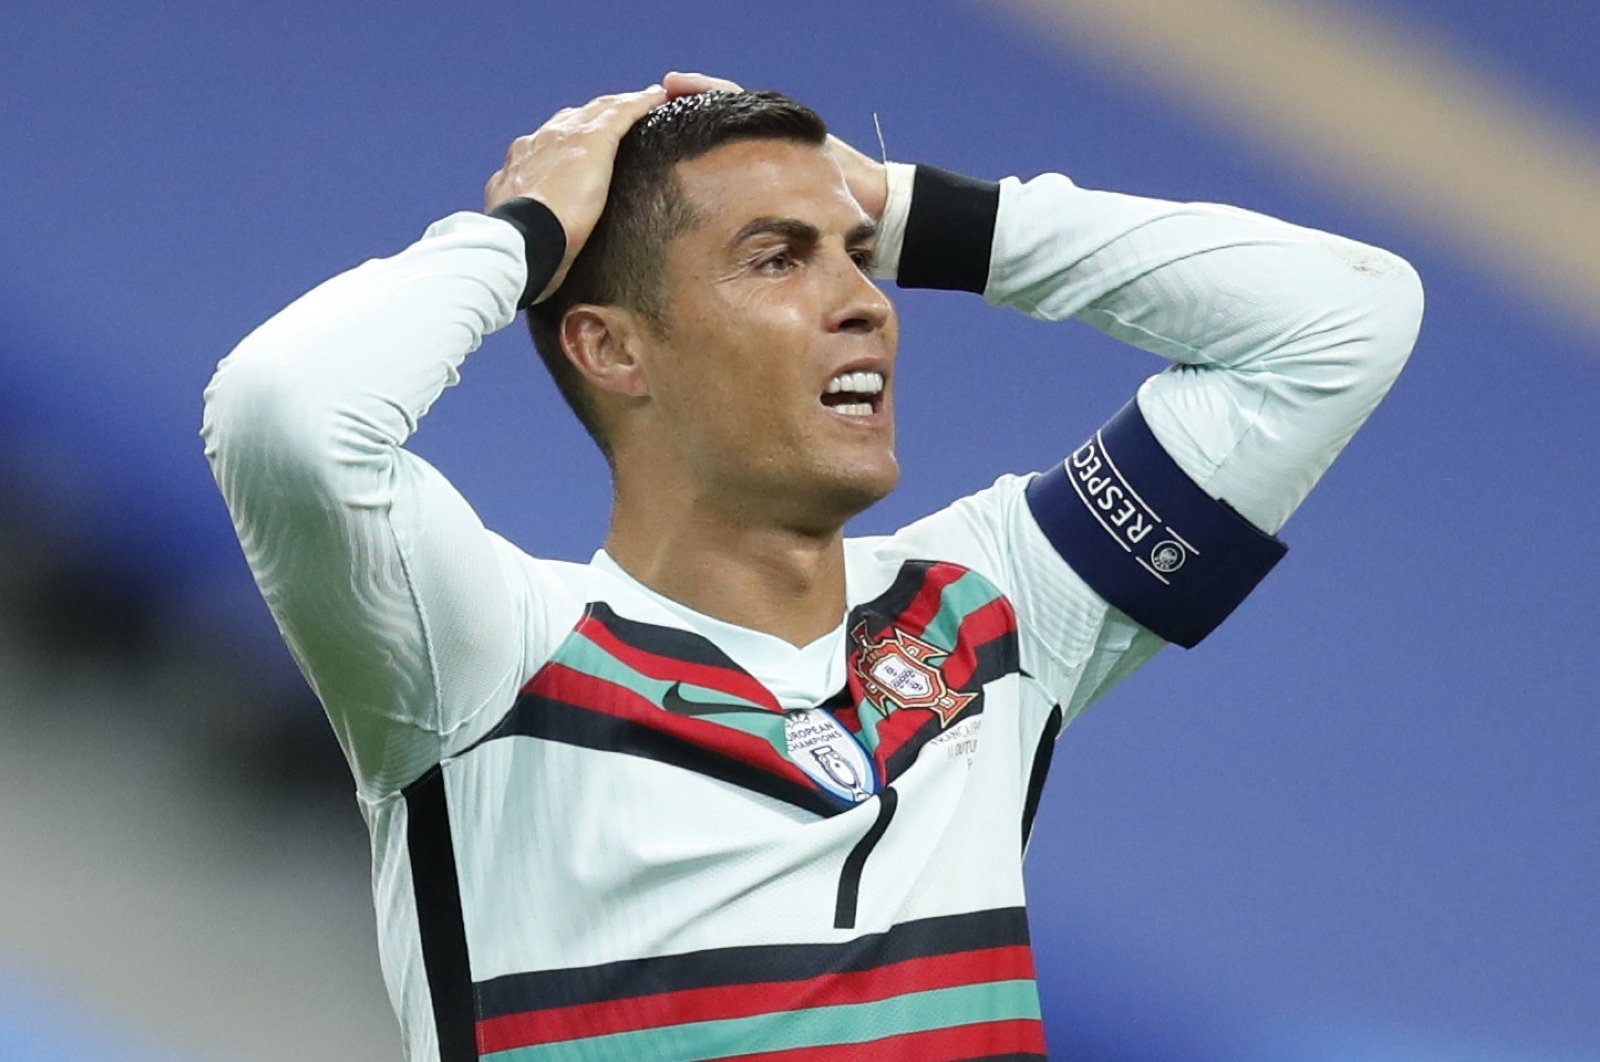 Portugal's Cristiano Ronaldo reacts during a UEFA Nations League match against France, in Paris, France, Oct. 11, 2020. (Reuters Photo)